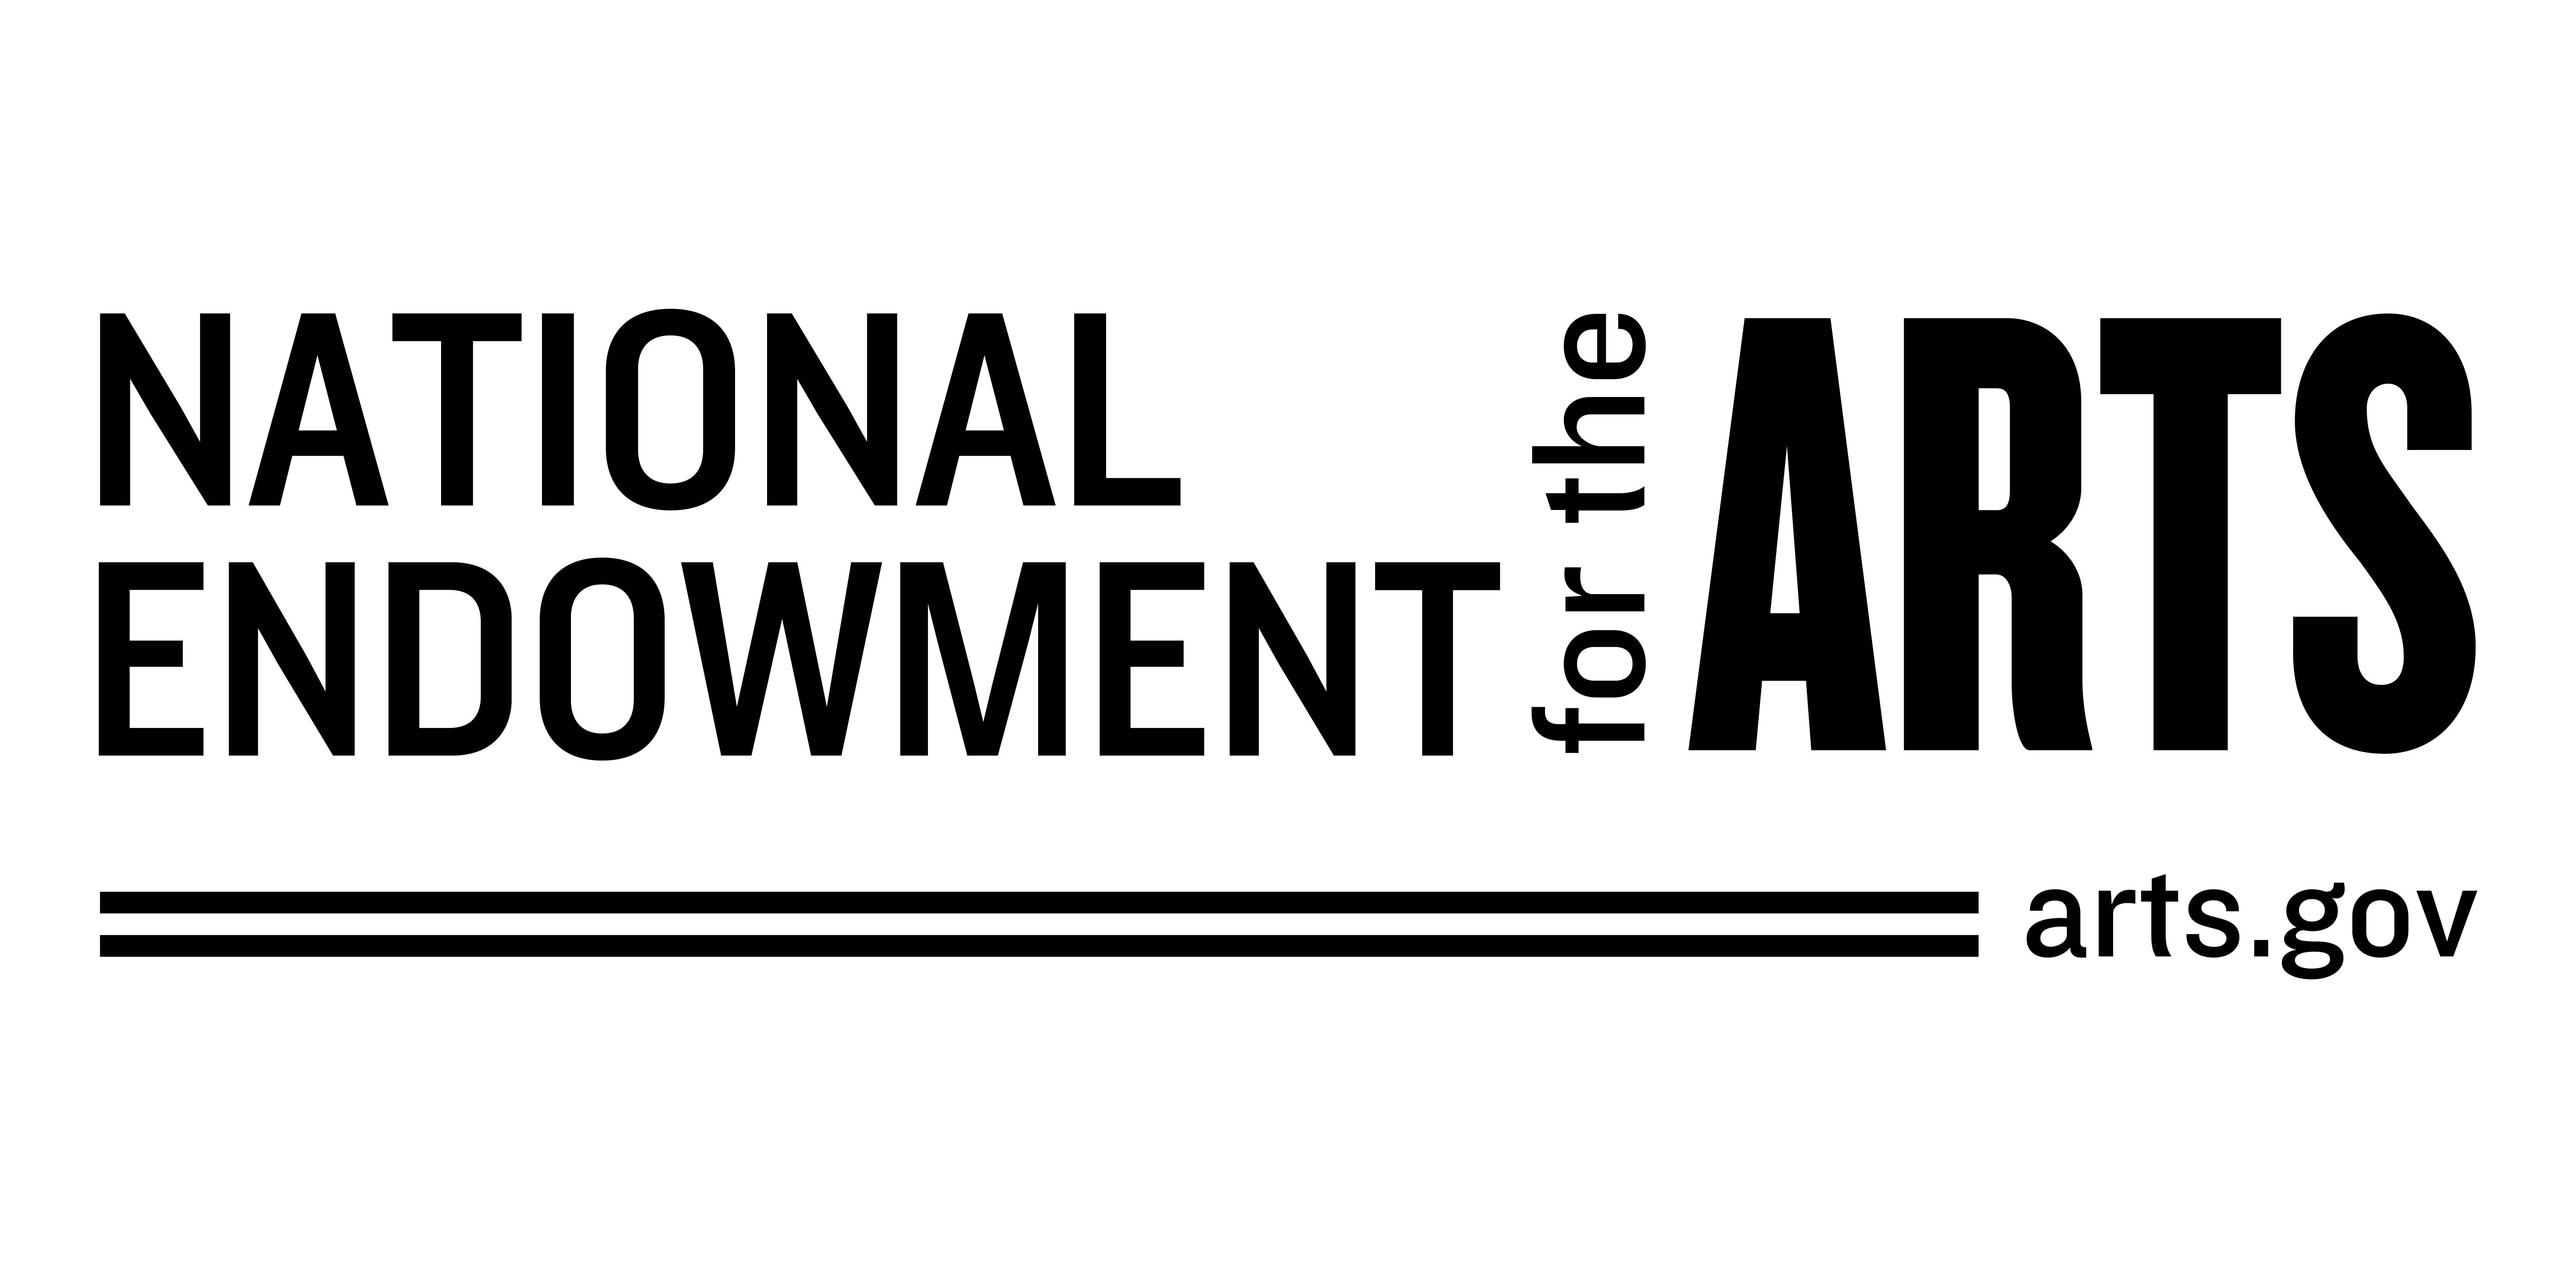 Gemini Ink to receive $10,000 grant from the National Endowment for the Arts